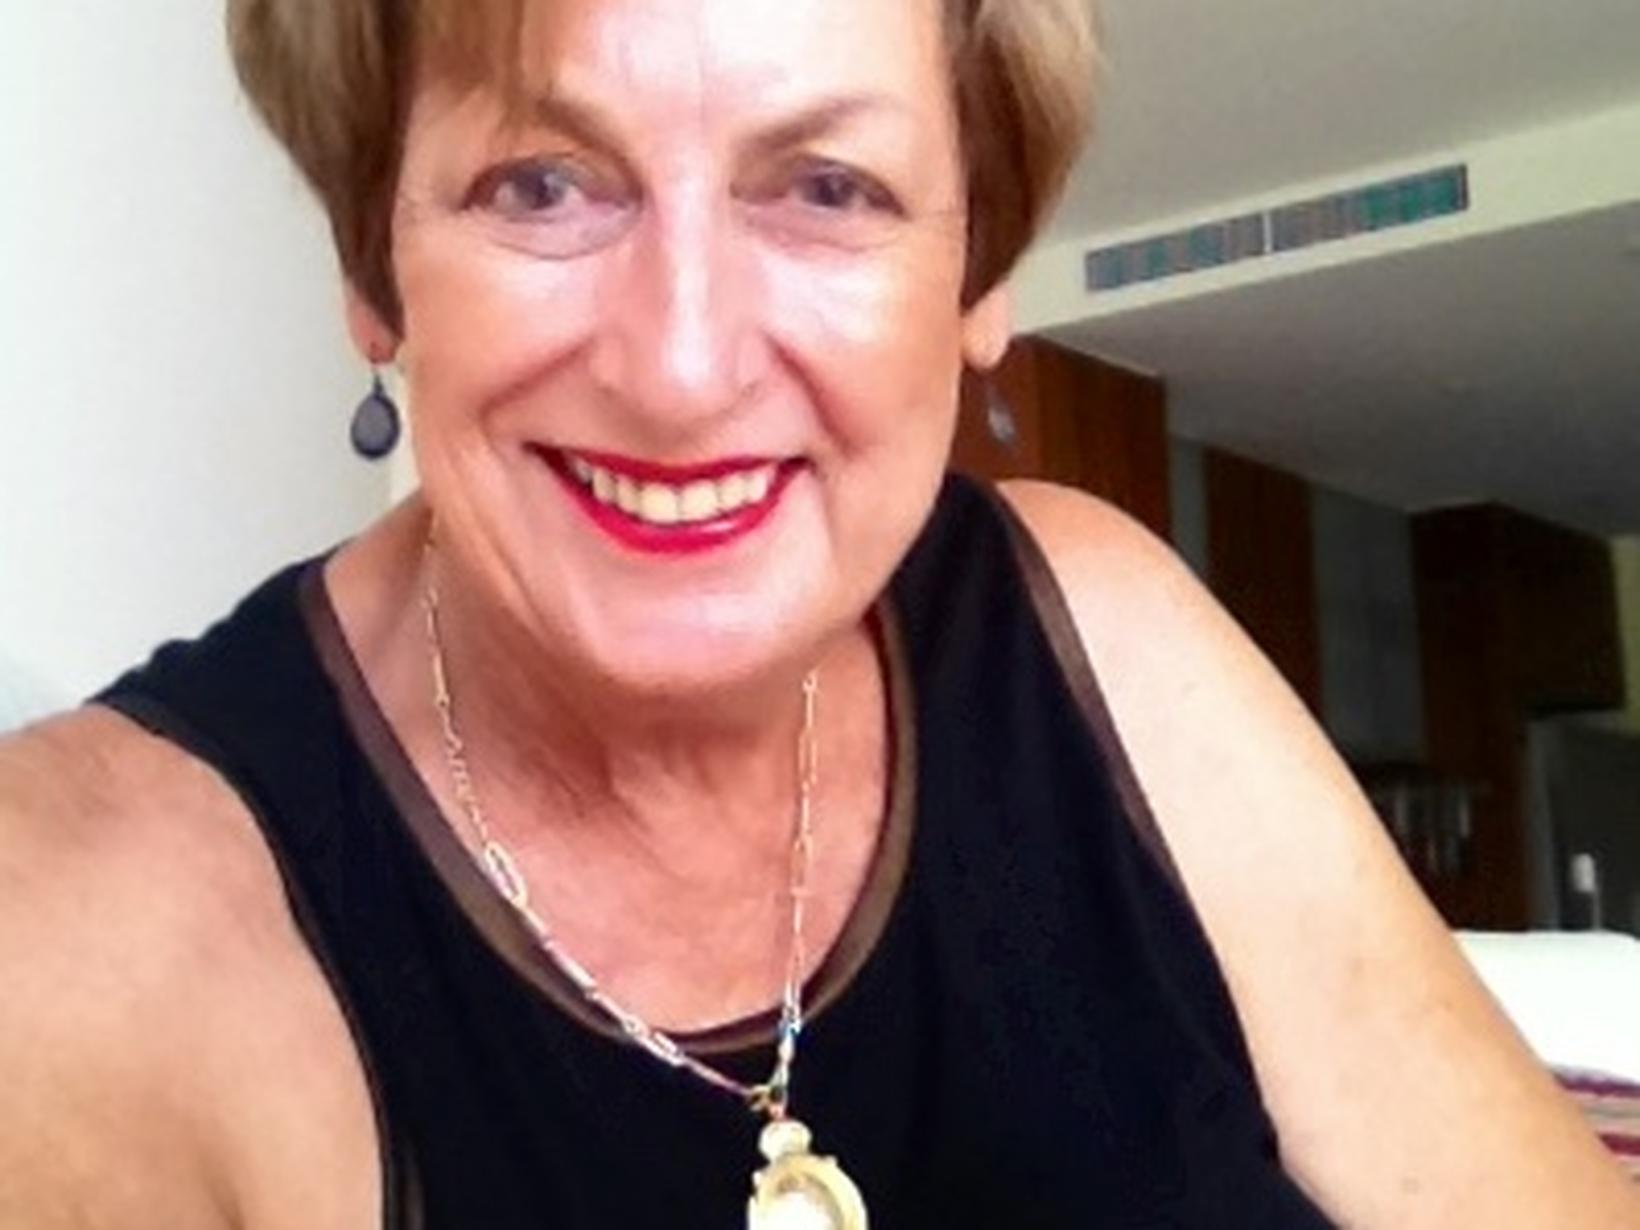 Janice from Kingscliff, New South Wales, Australia